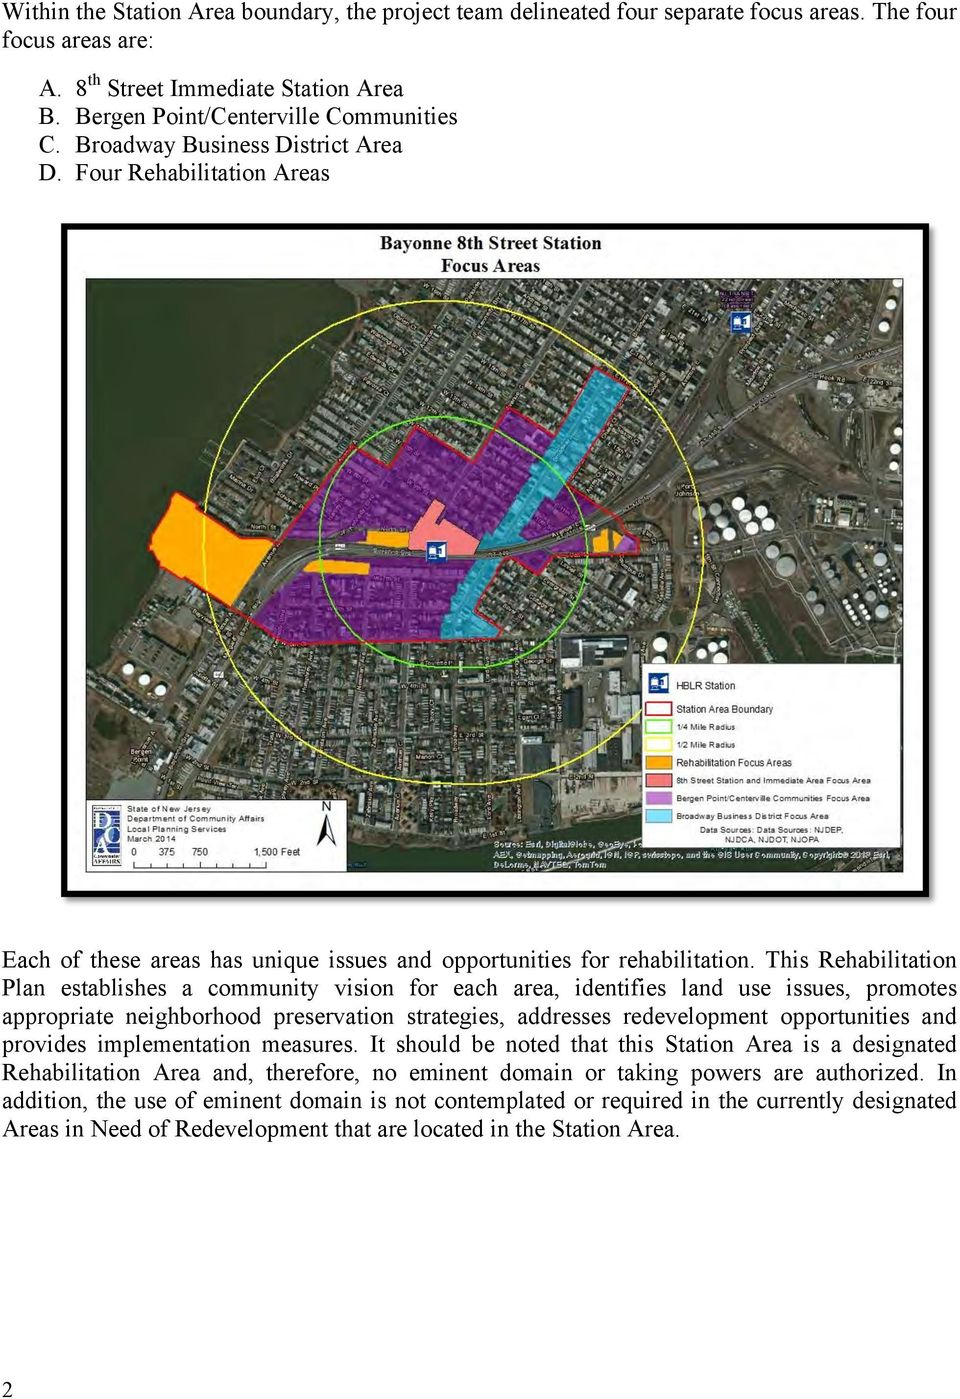 This Rehabilitation Plan establishes a community vision for each area, identifies land use issues, promotes appropriate neighborhood preservation strategies, addresses redevelopment opportunities and